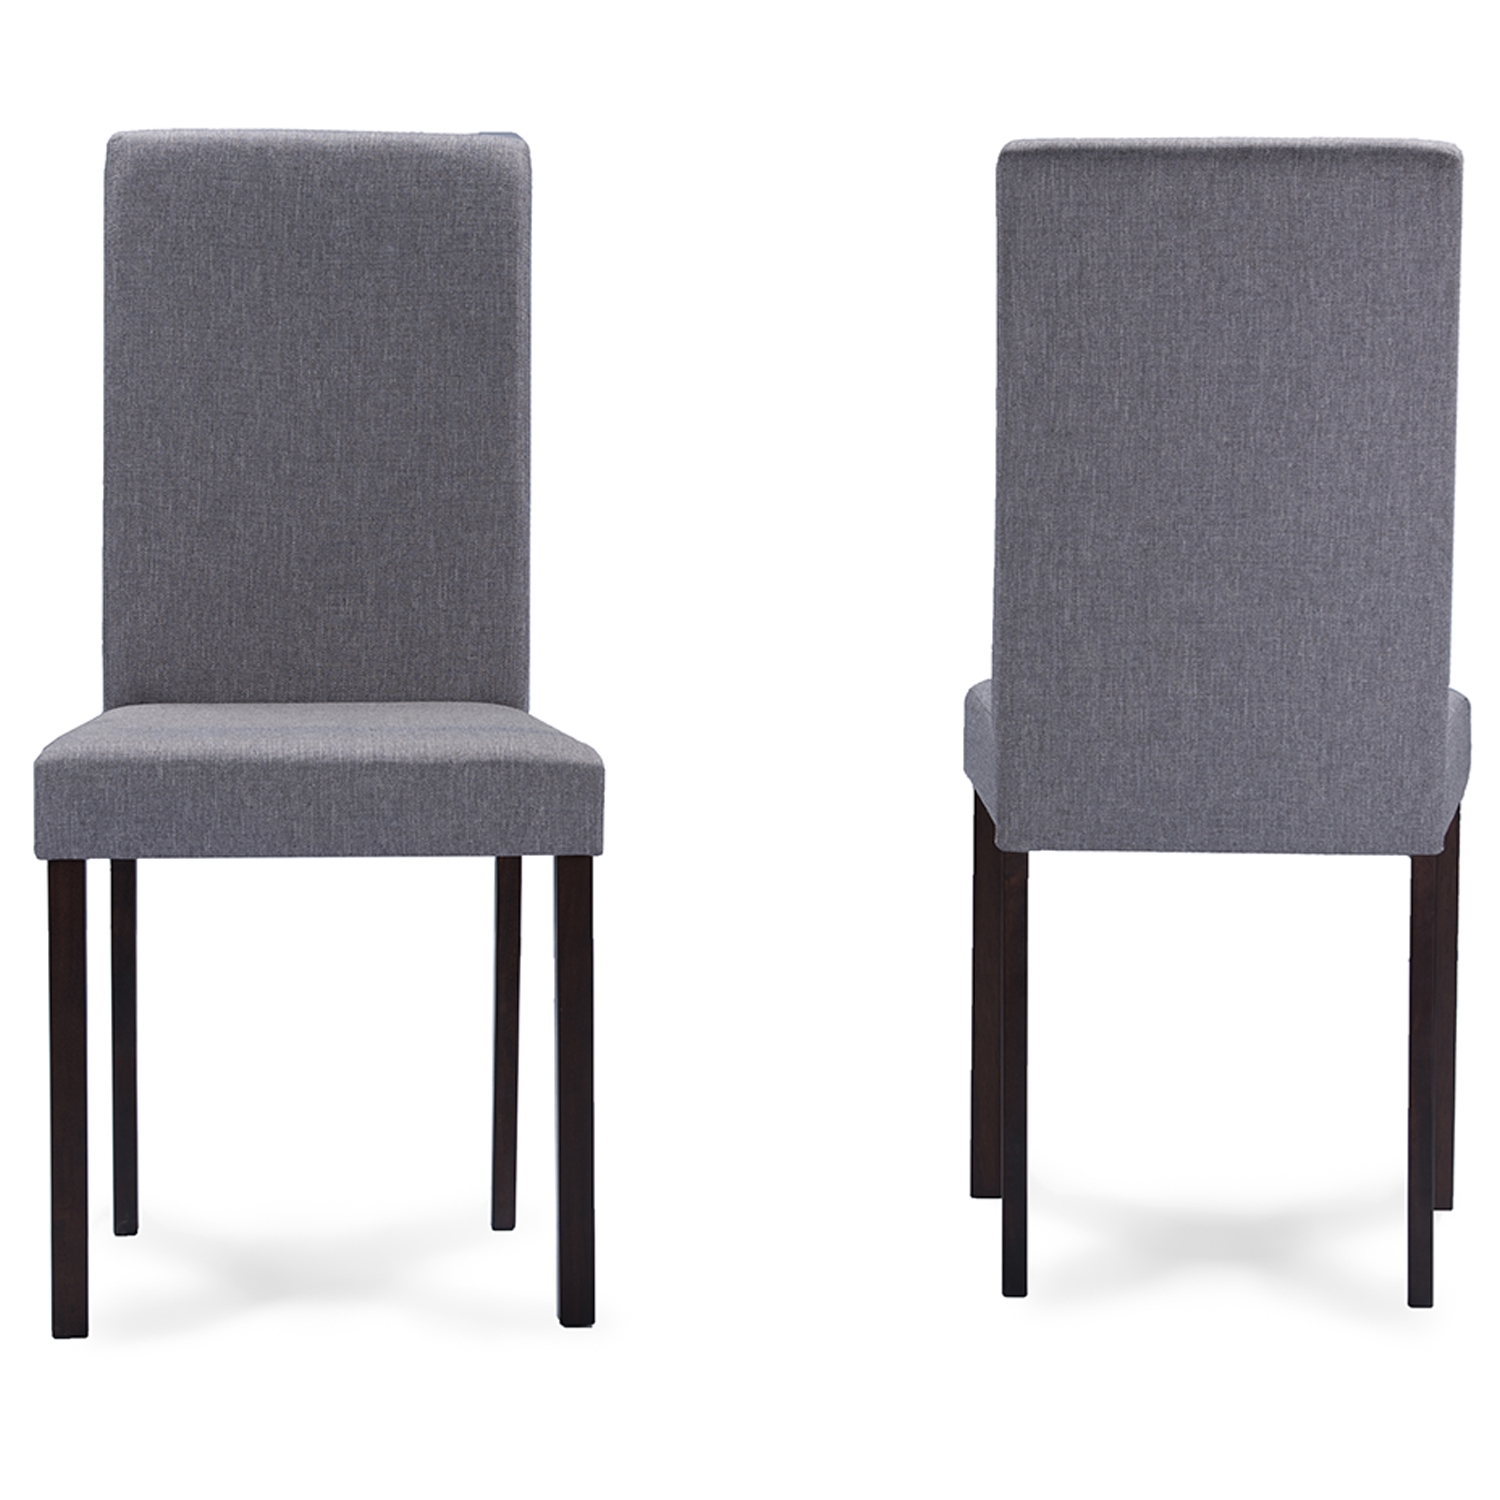 ... Baxton Studio Andrew Contemporary Espresso Wood Grey Fabric Dining Chair    Andrew Dining Chair Grey ...